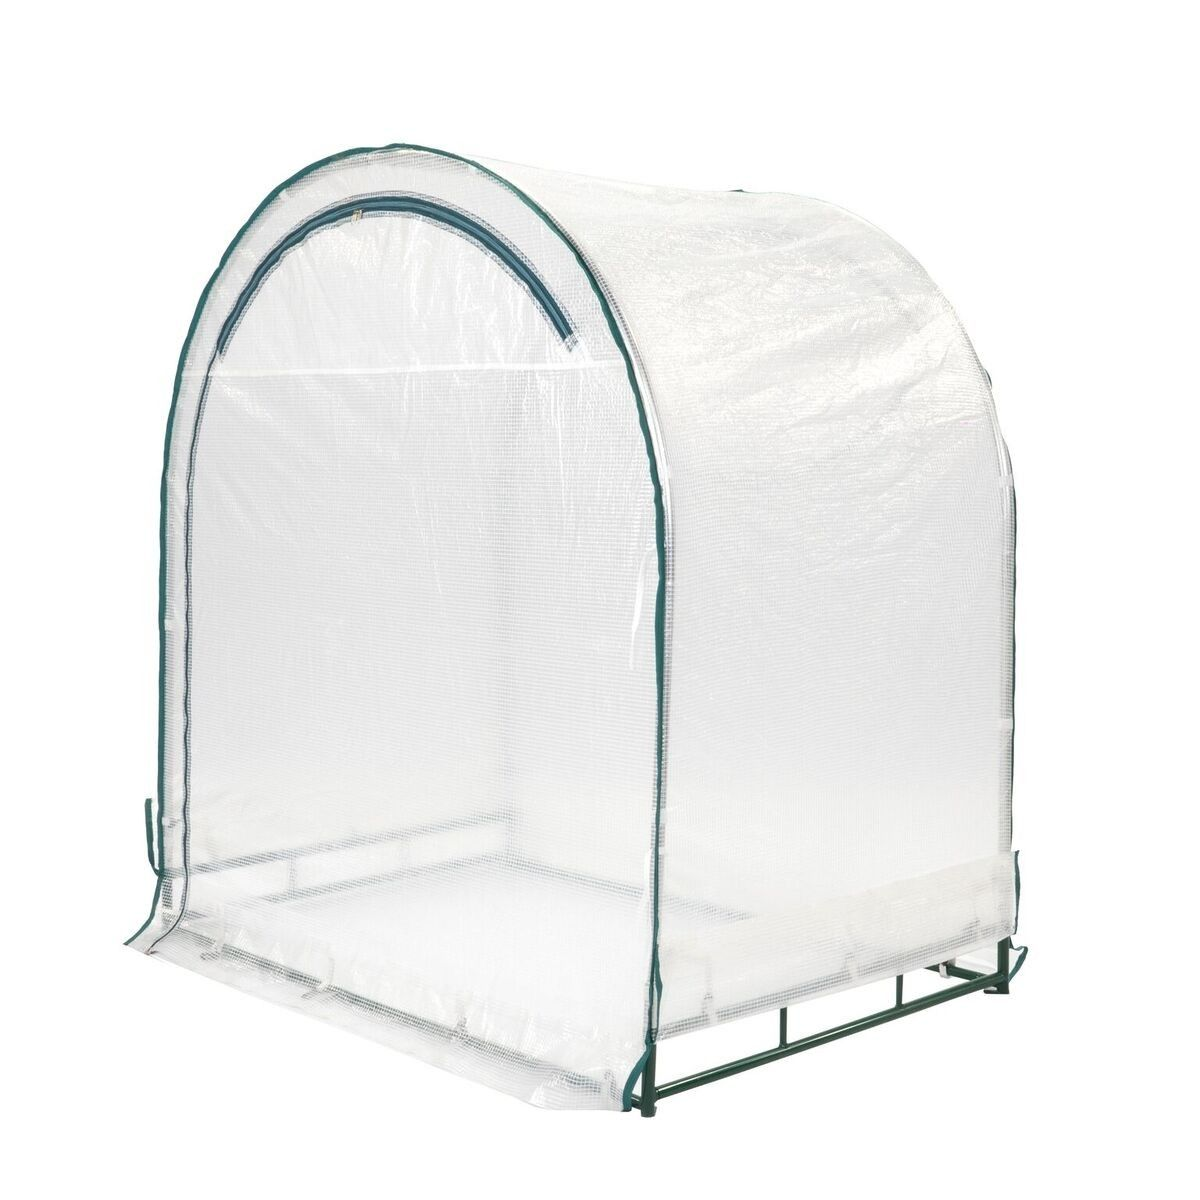 Year Round Green House Tent High Quality And Portable Green House Is A Great Addition For All Garden Lovers Easy Assembl In 2020 House Tent Jumpking Trampoline Green